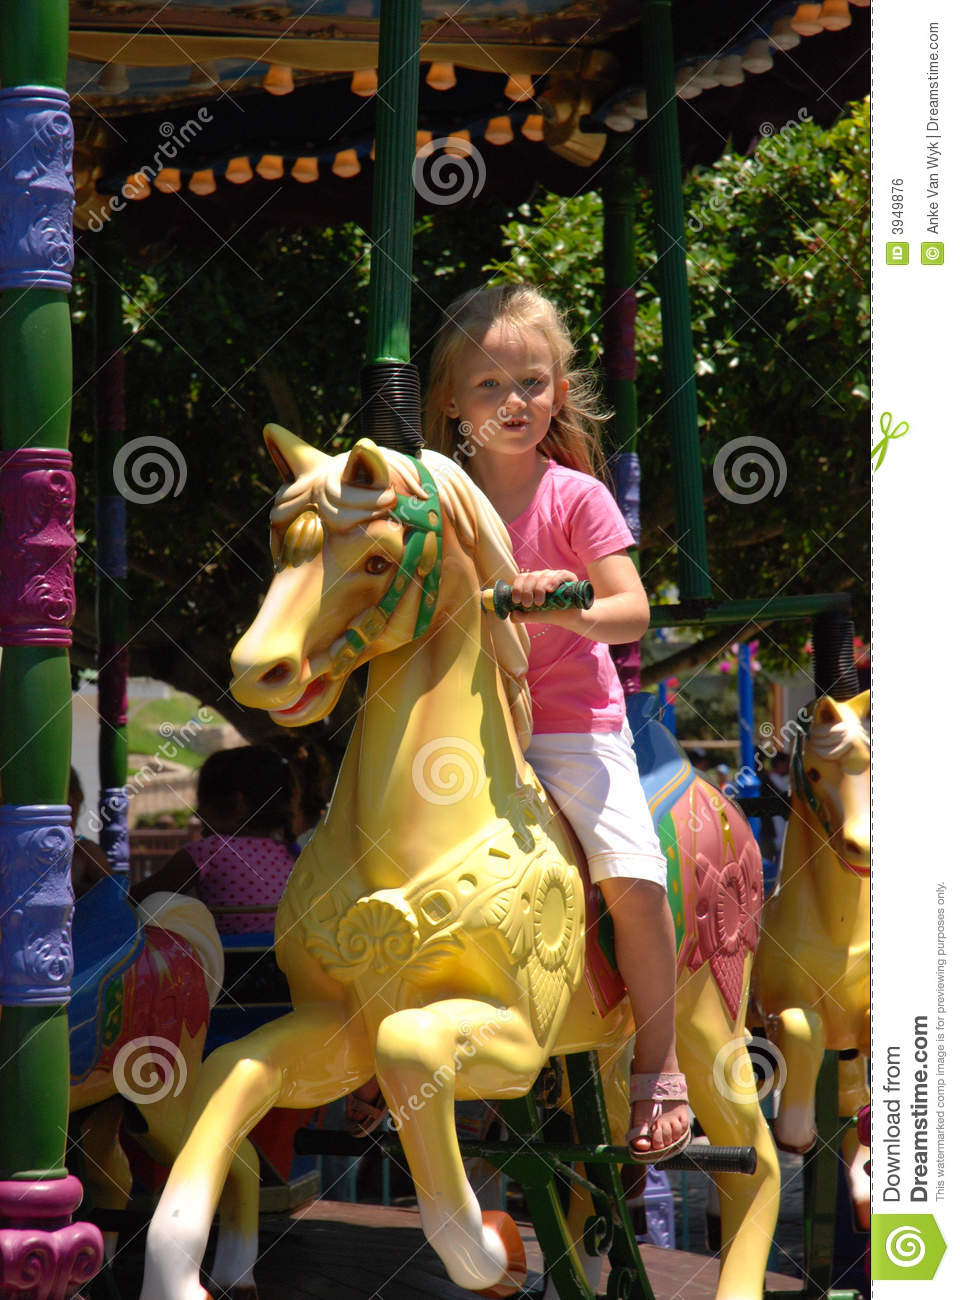 ... facial expression riding on a horse on a merry-go-round outdoors